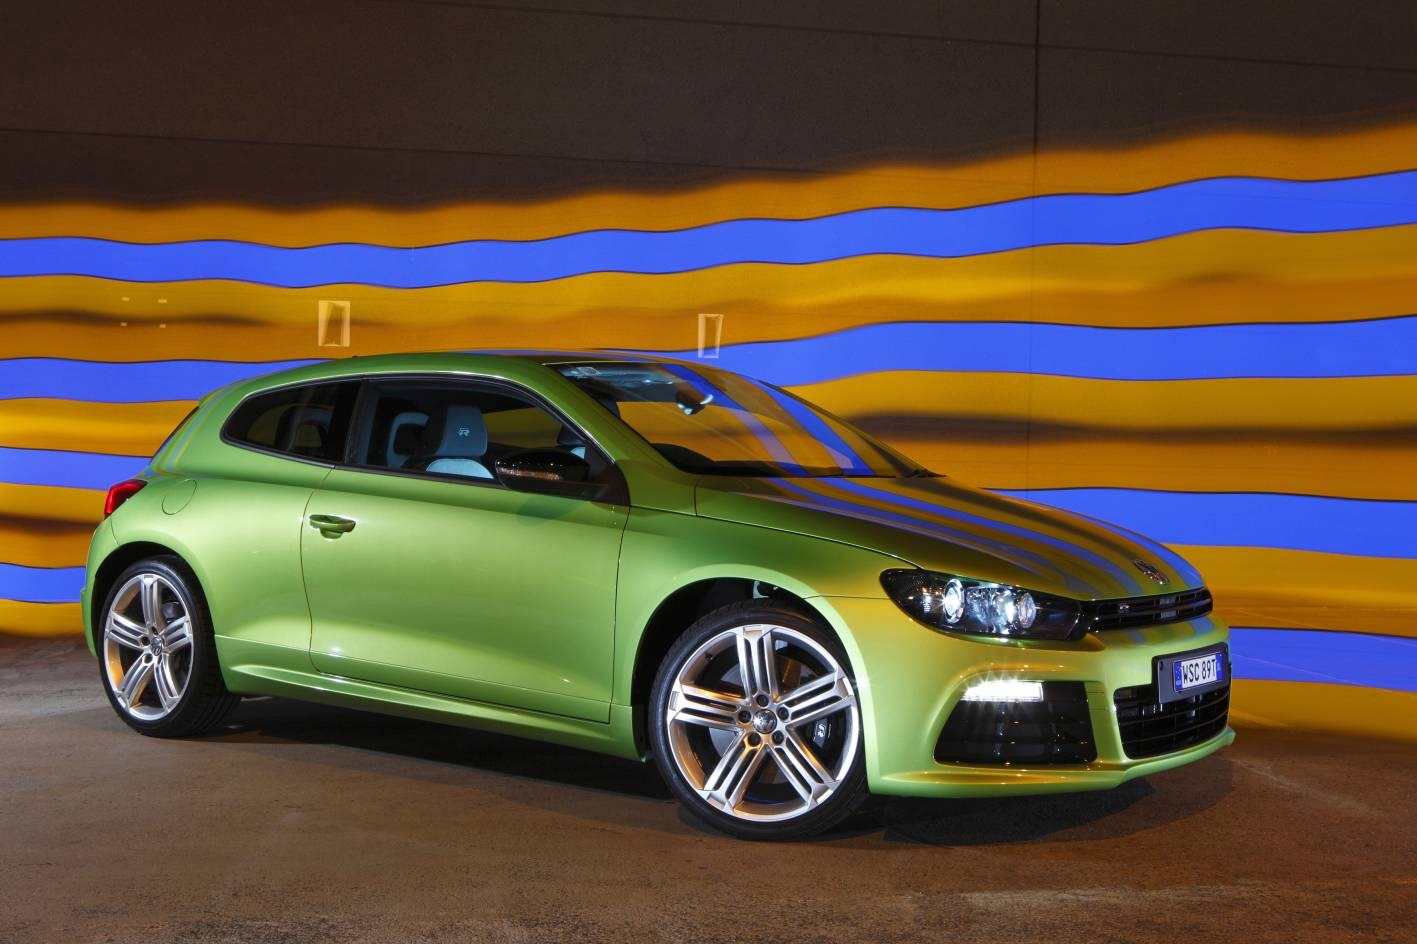 Volkswagen Cars News Next Gen Scirocco Could Debut 2018